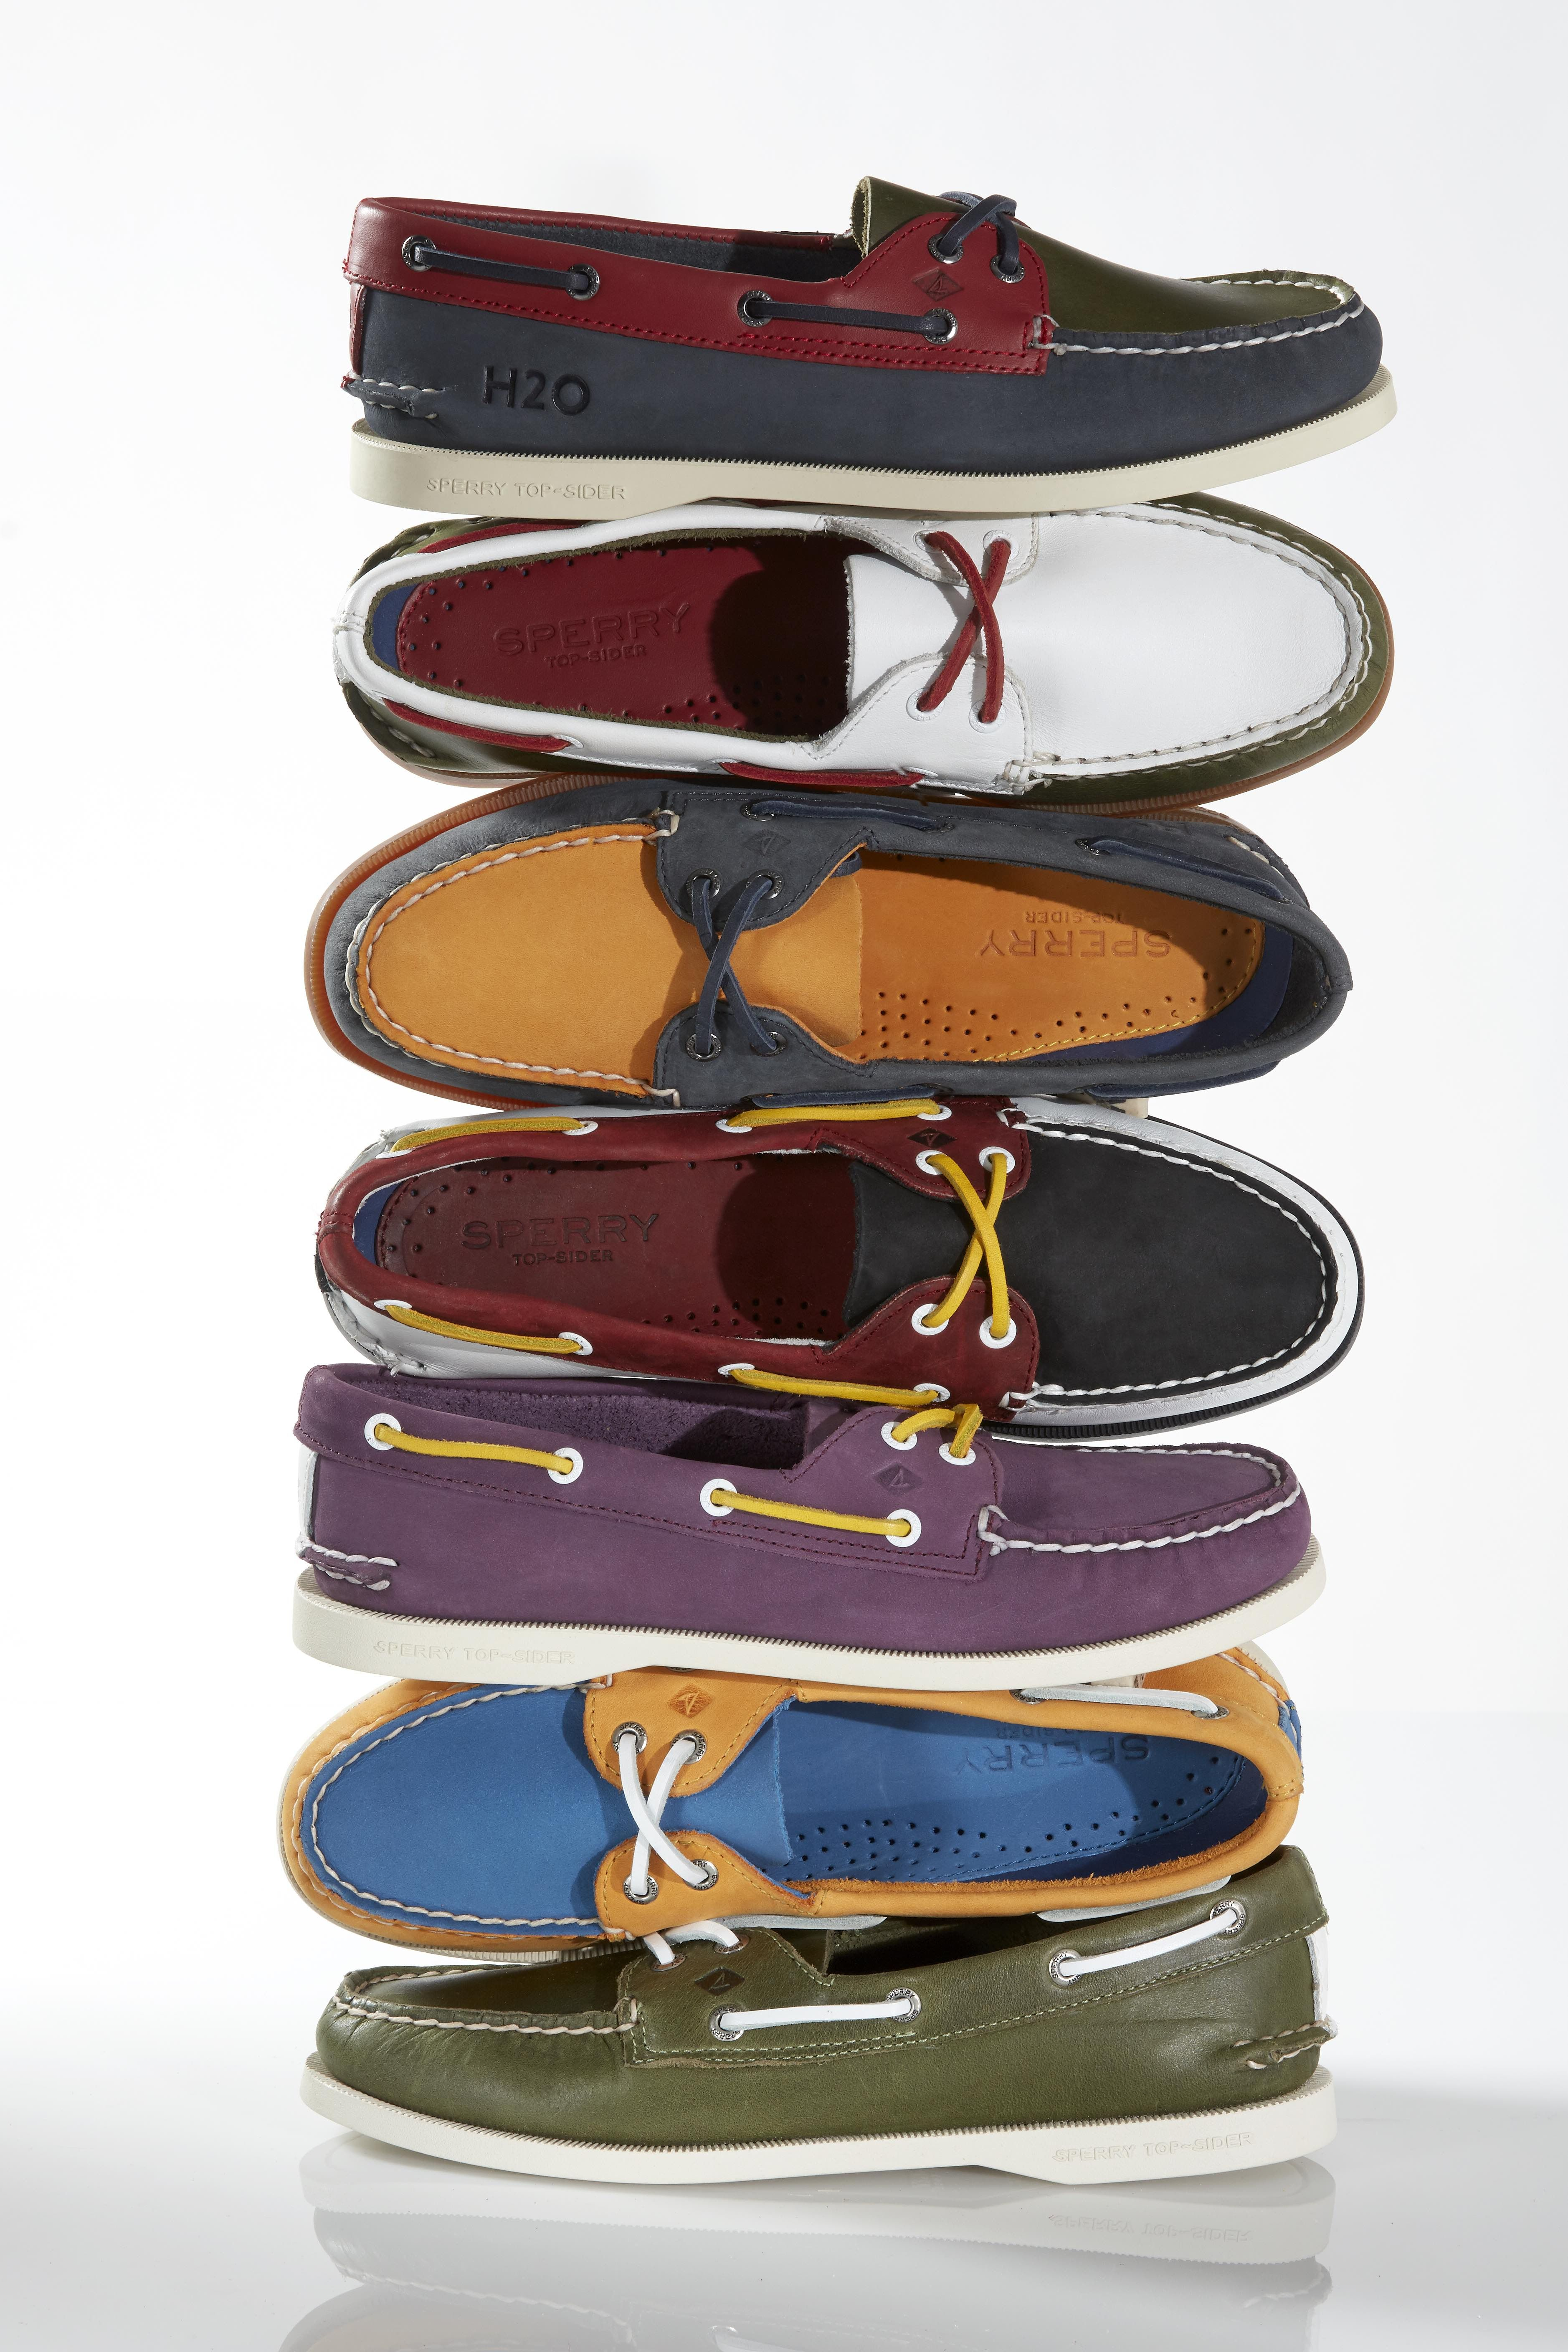 Sperry Launches Custom Boat Shoes